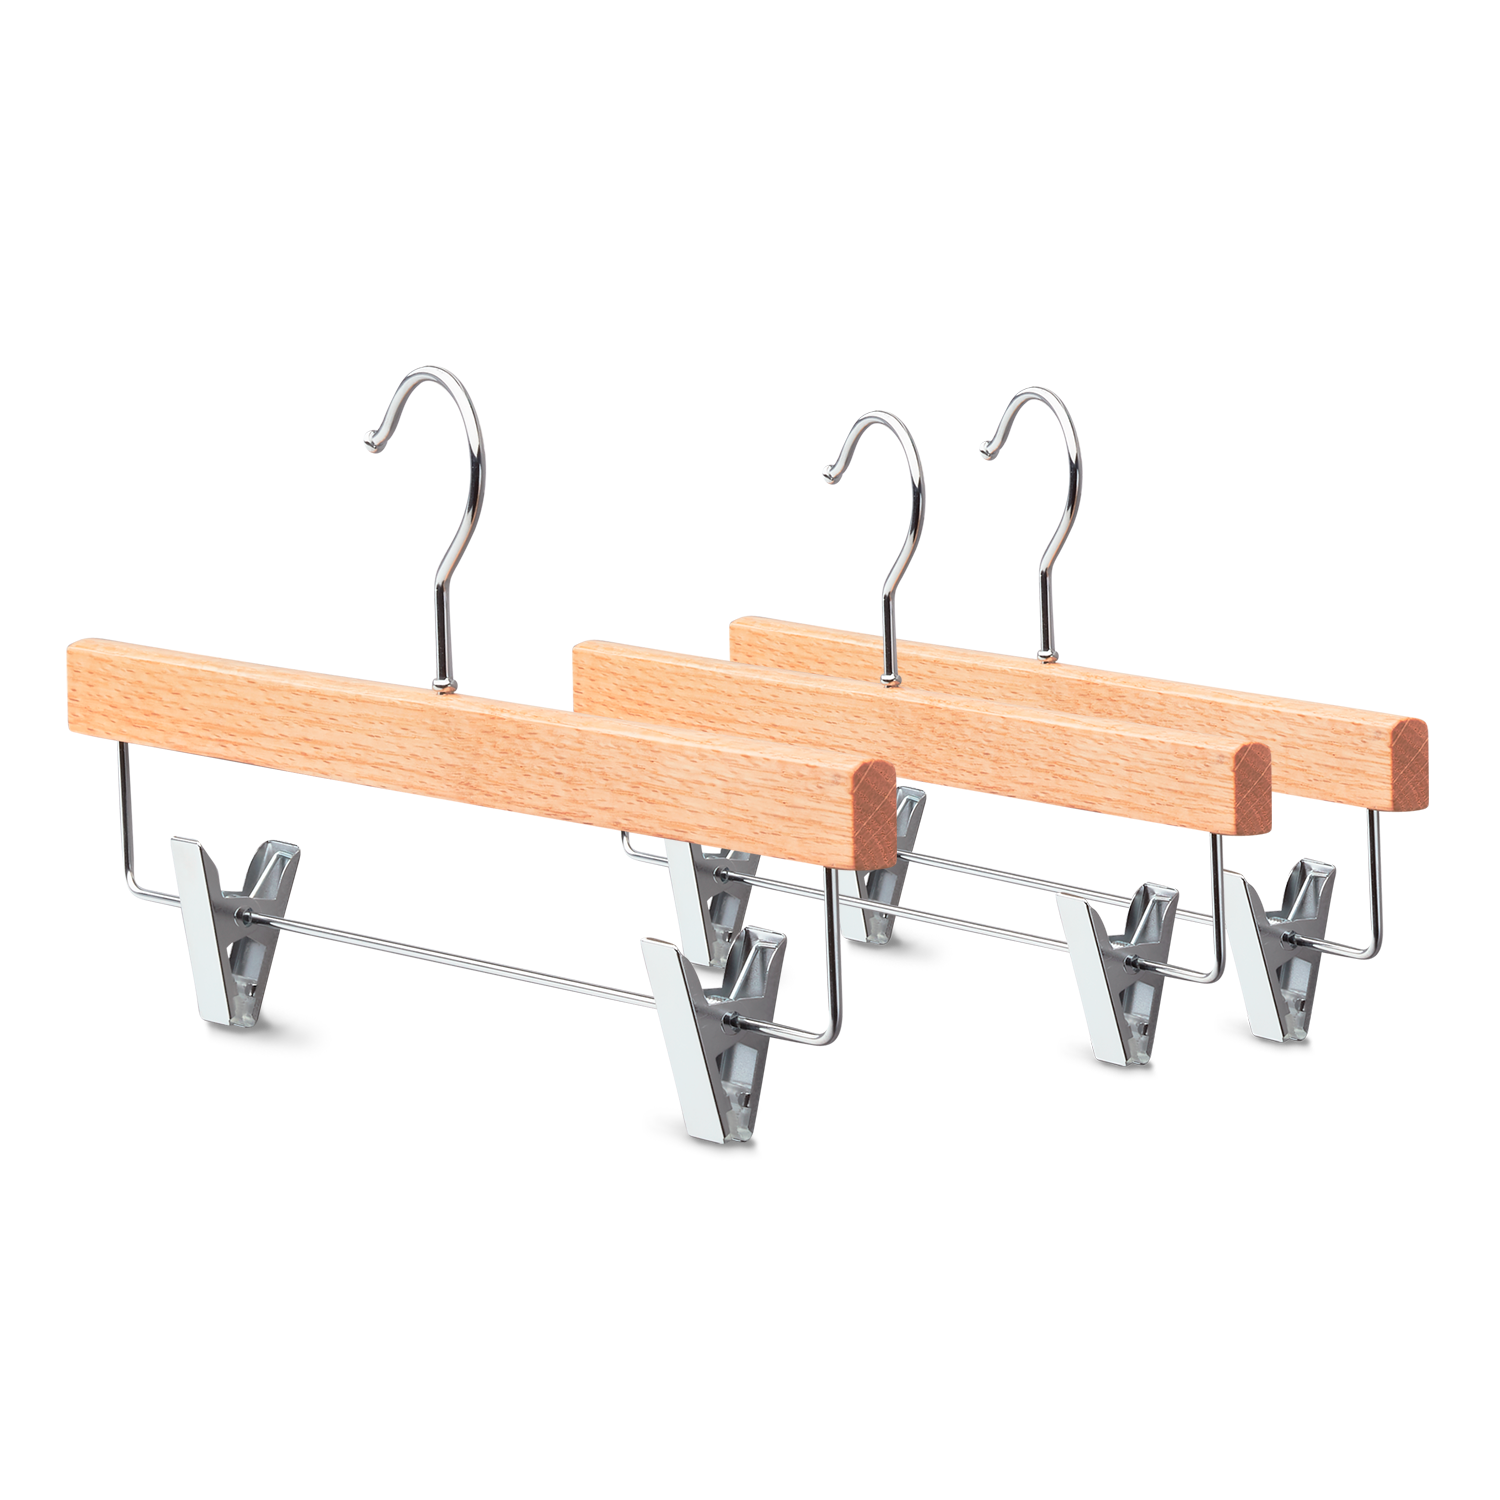 YourHanger CLASSIC natural oak bottom